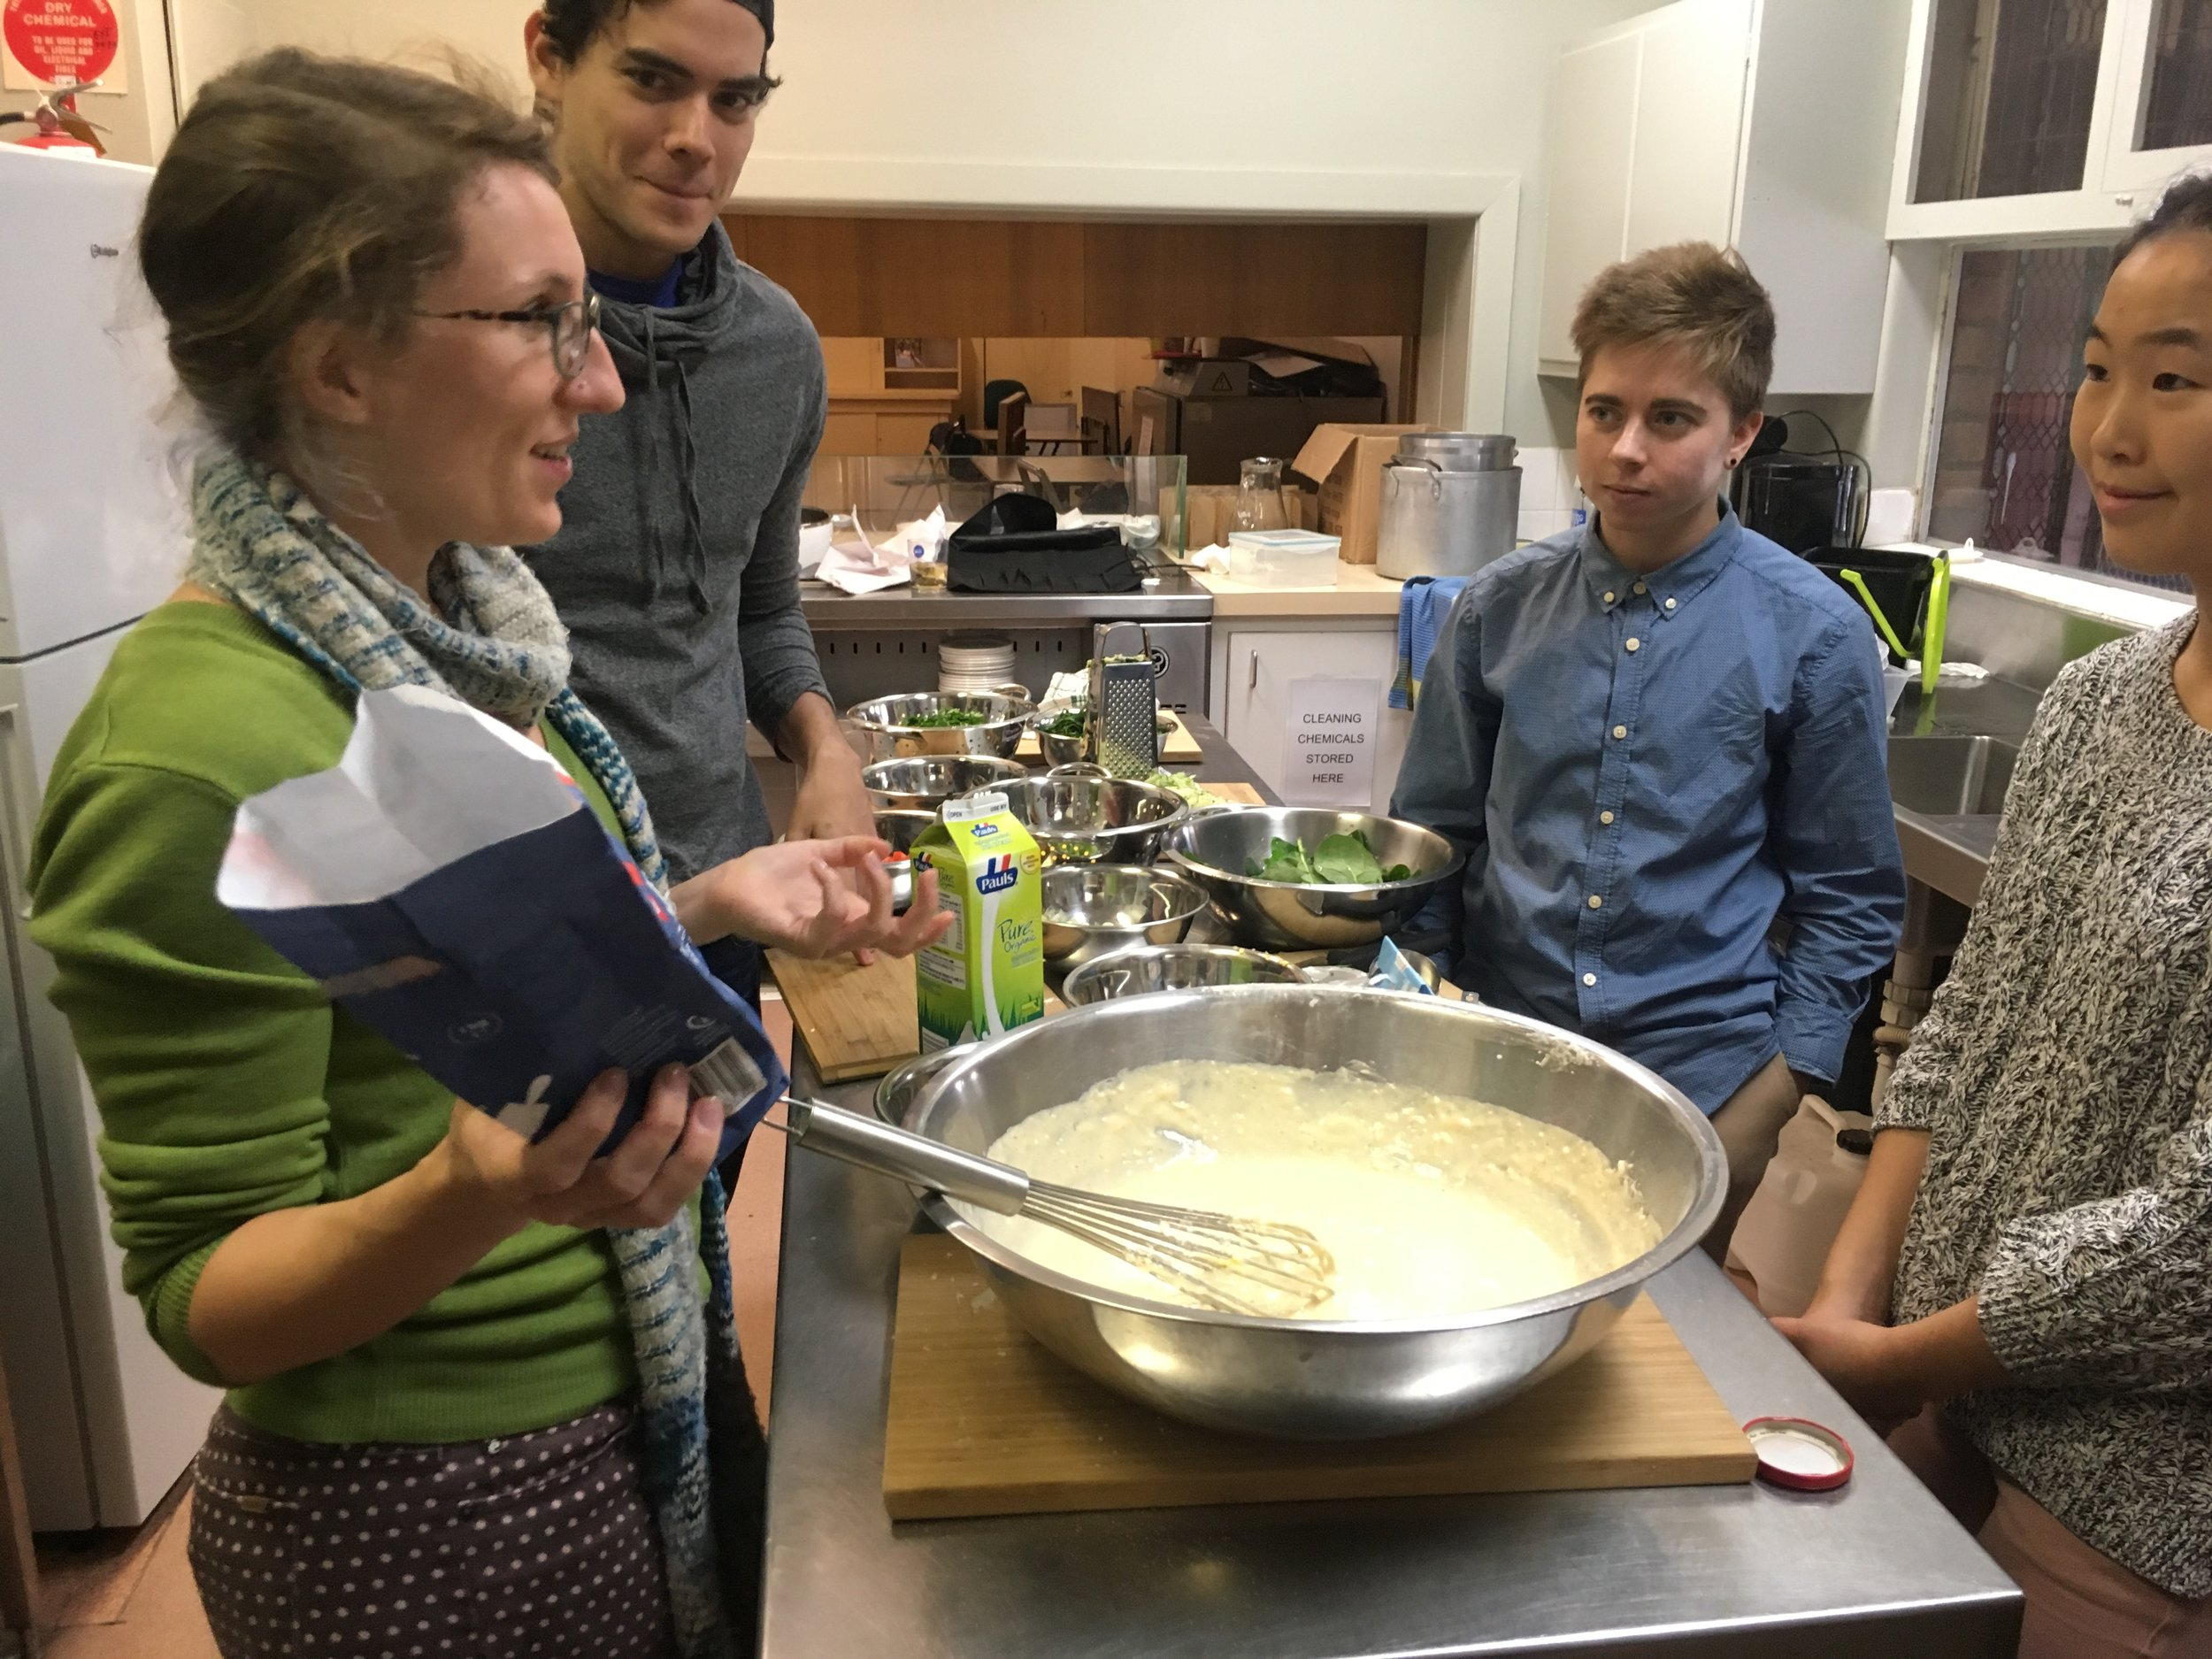 Jenn and the standing over a big bowl of pancake mix discussing how to get the perfect consistency.